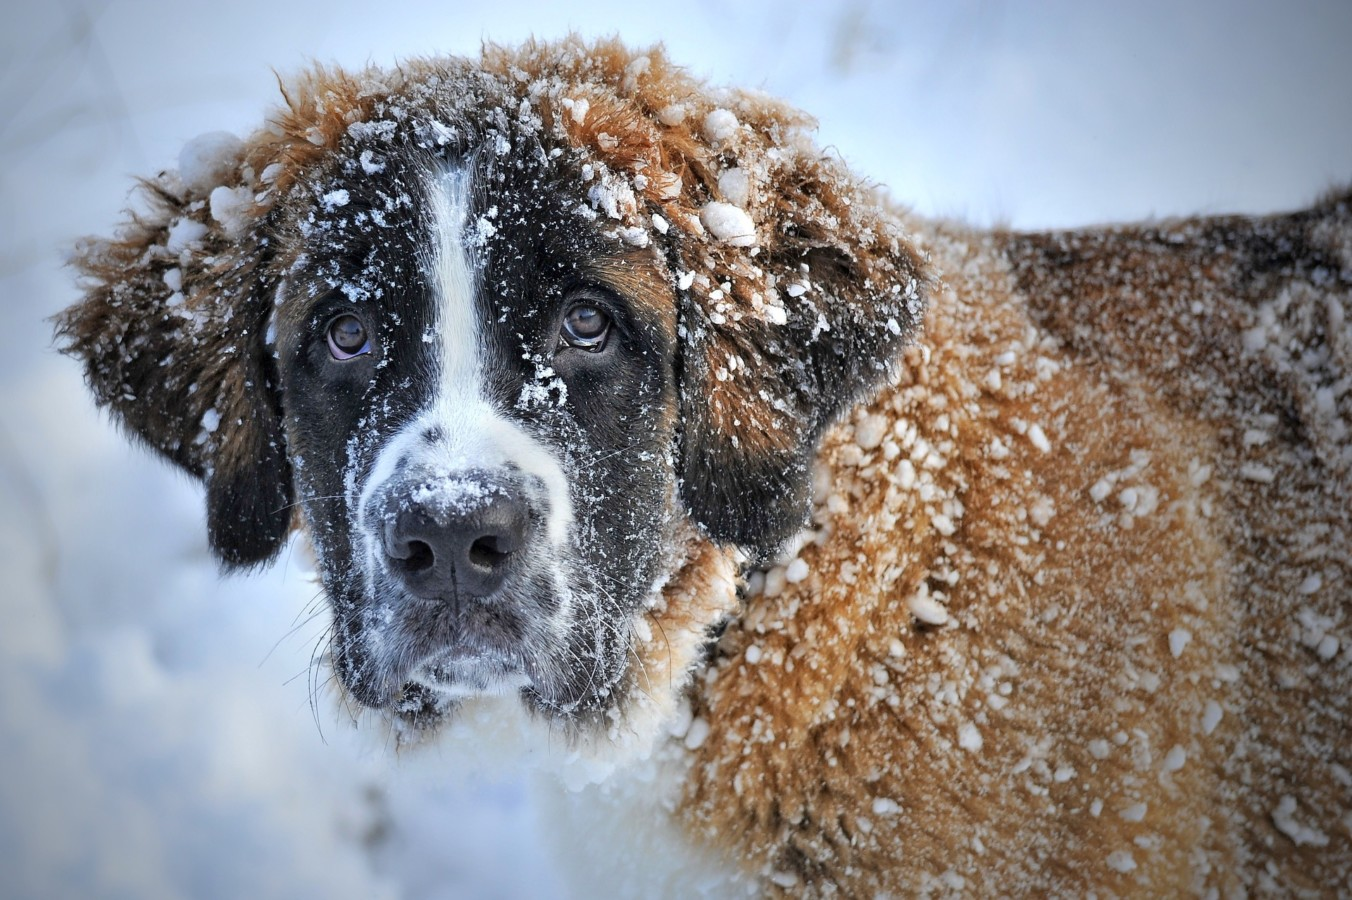 Many animals can suffer during extreme weather conditions